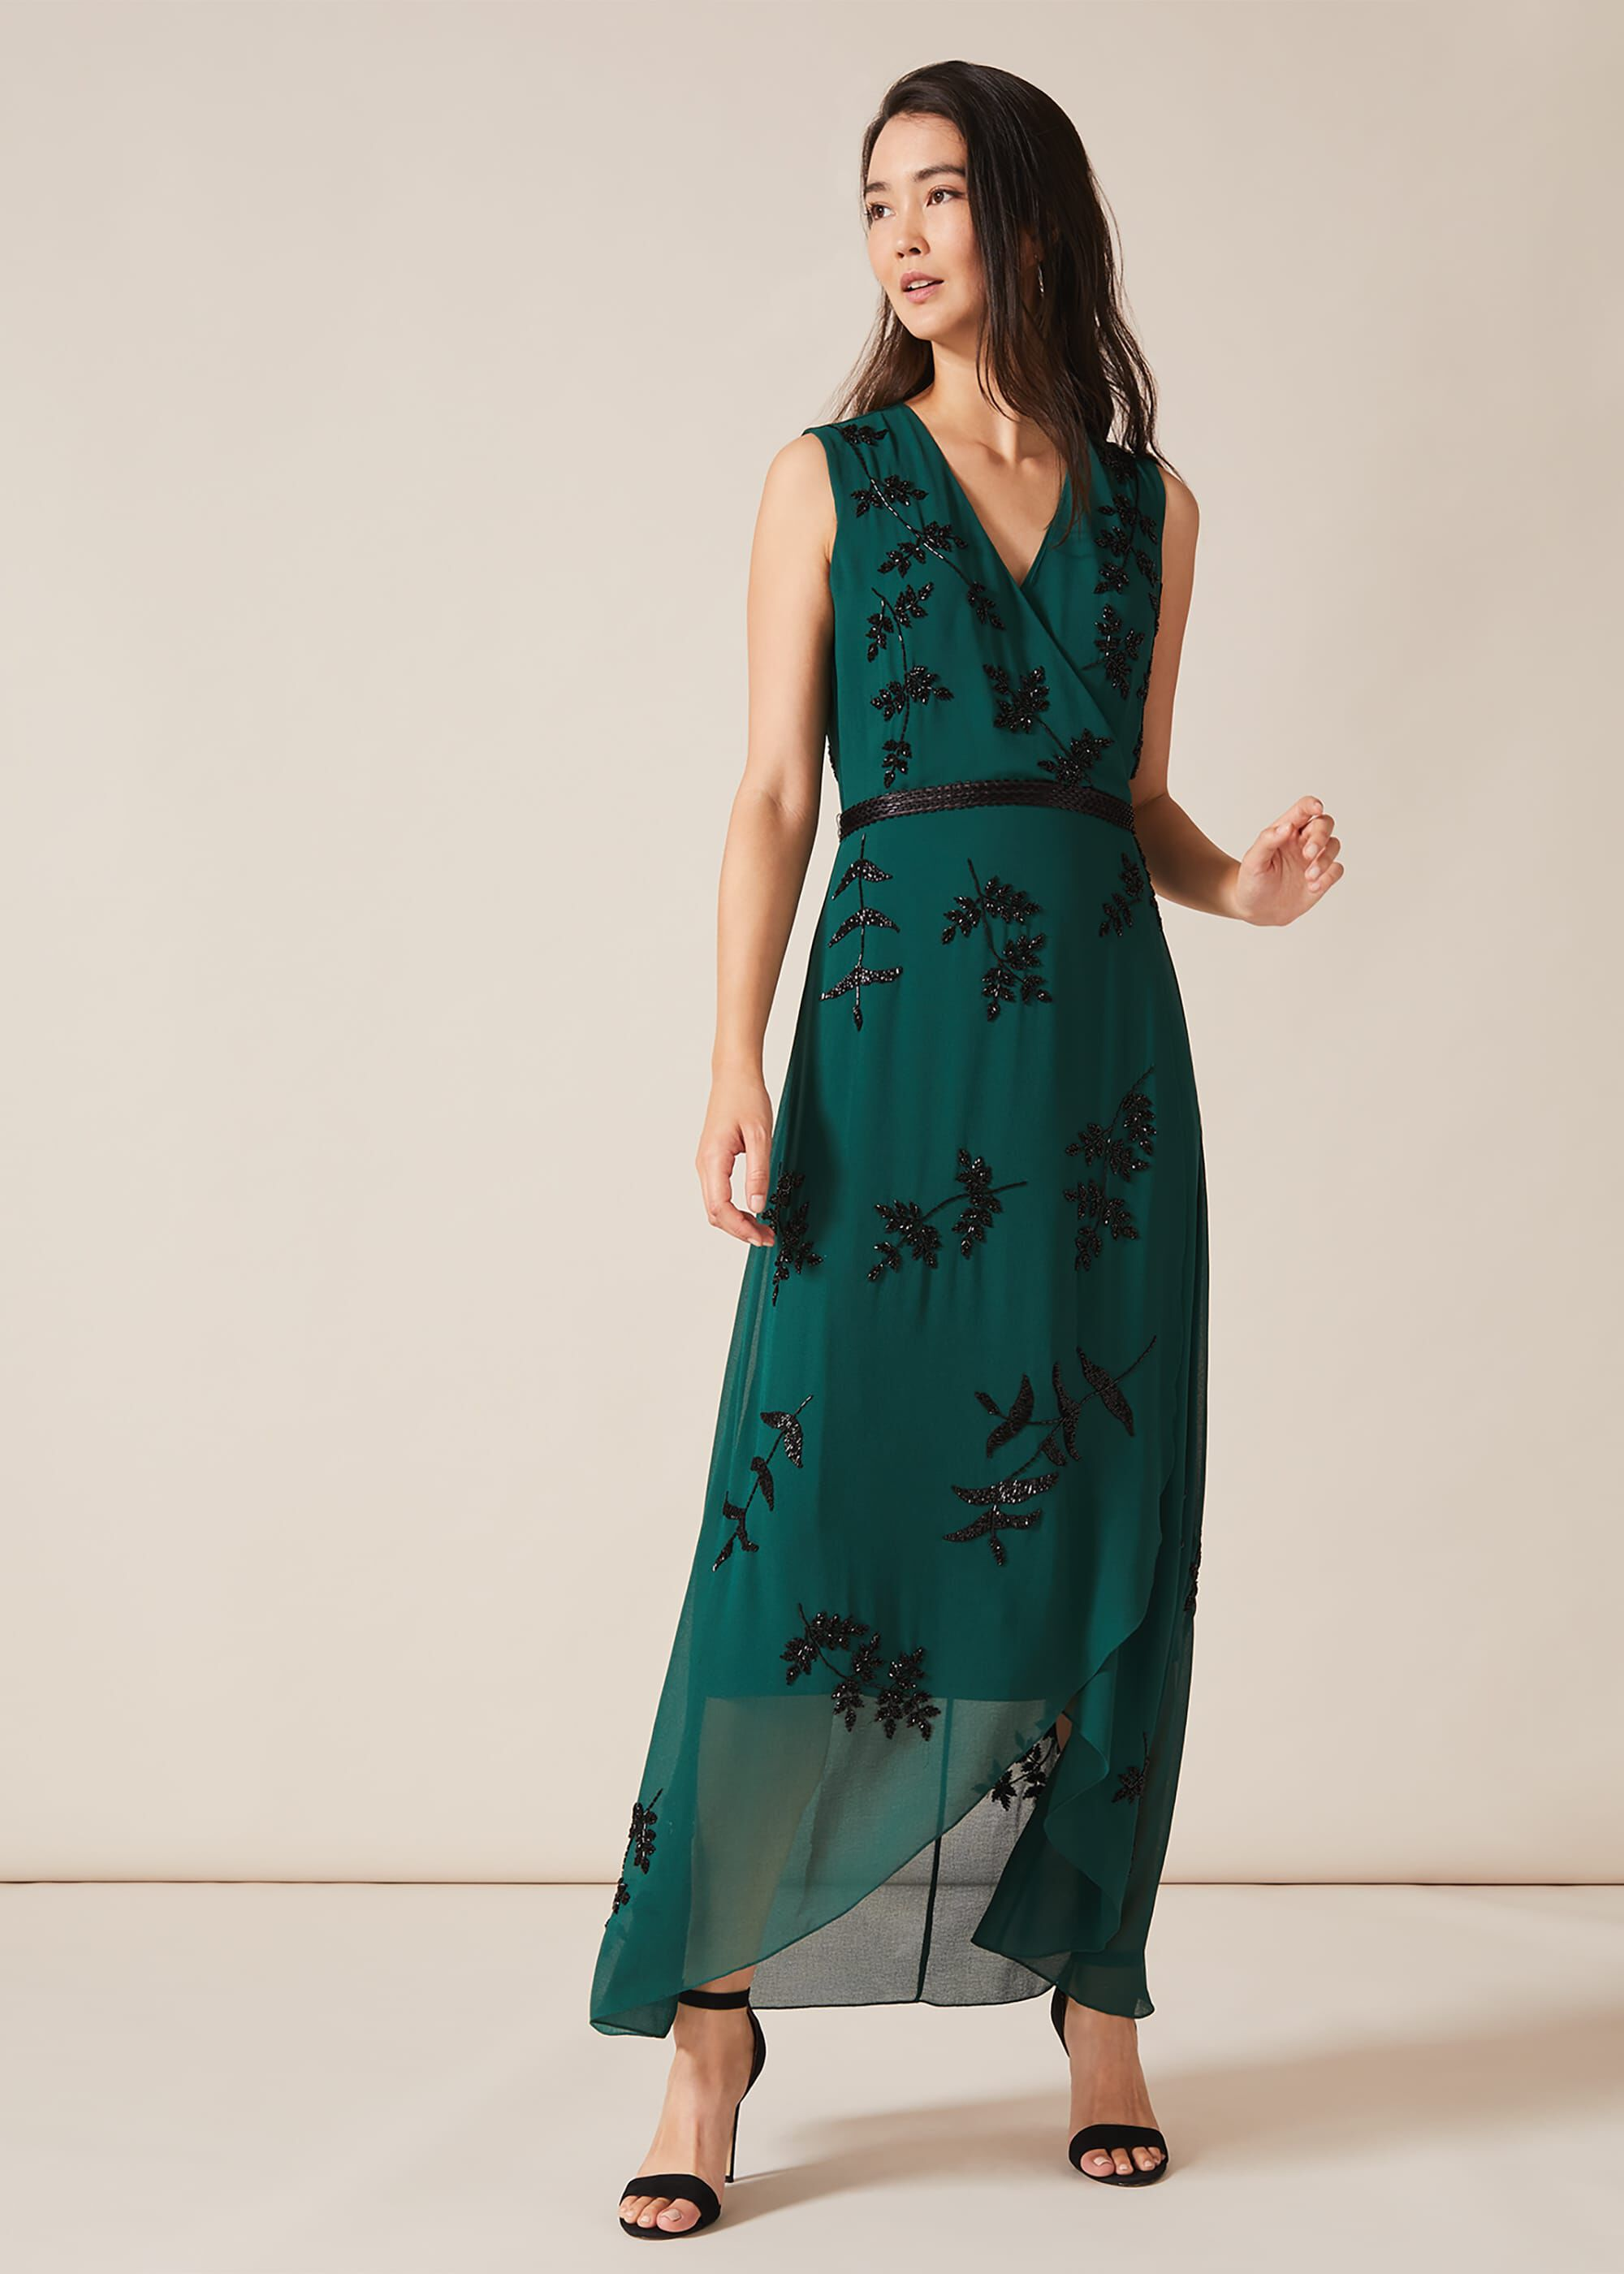 Phase Eight Serena Beaded Dress, Green, Maxi, Occasion Dress